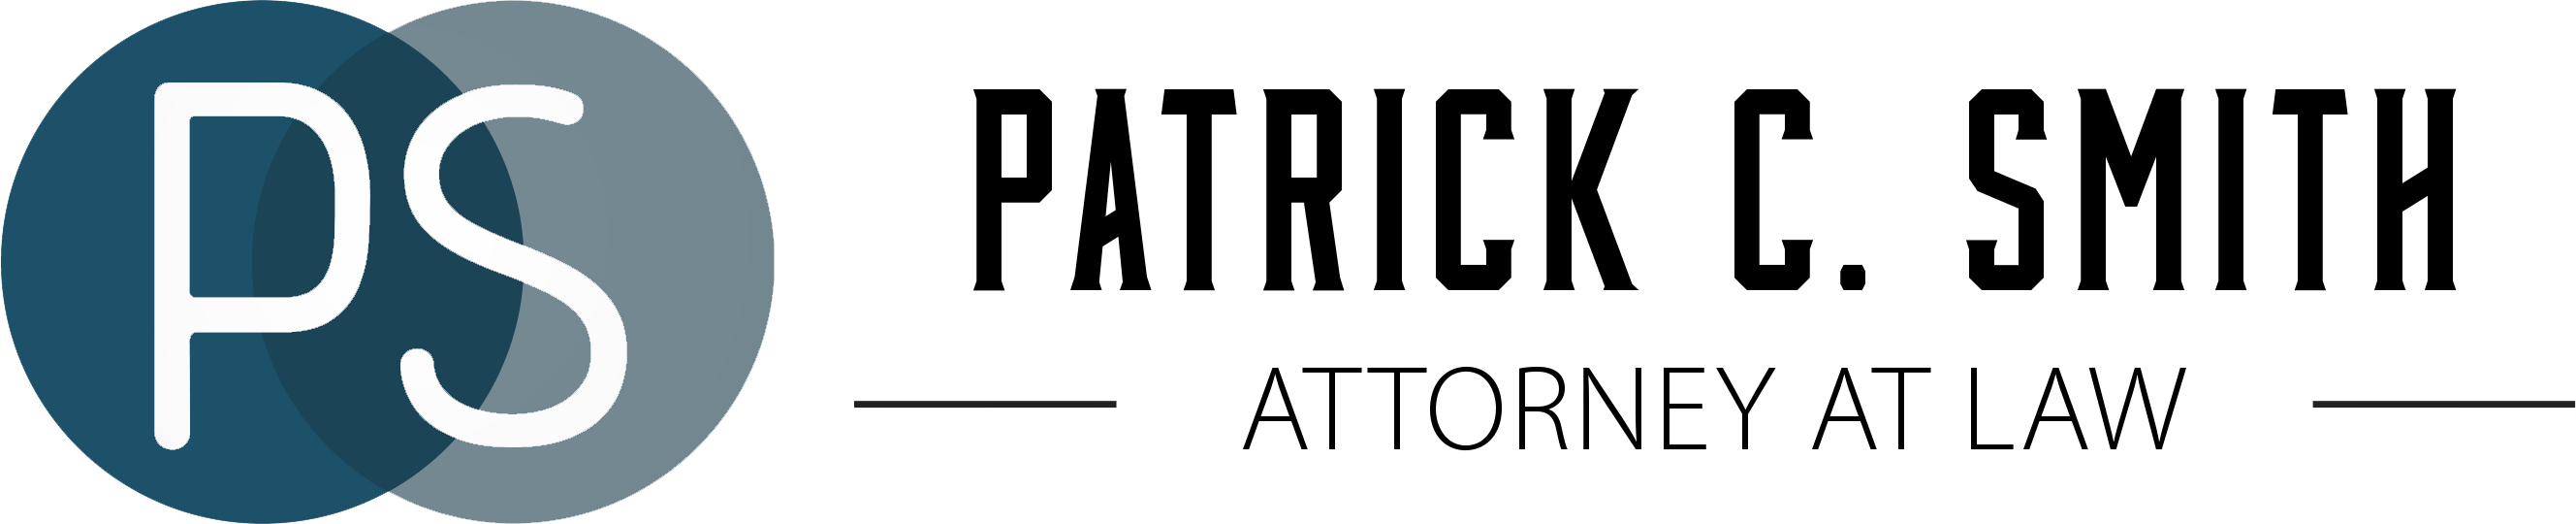 Patrick C. Smith, Attorney at Law